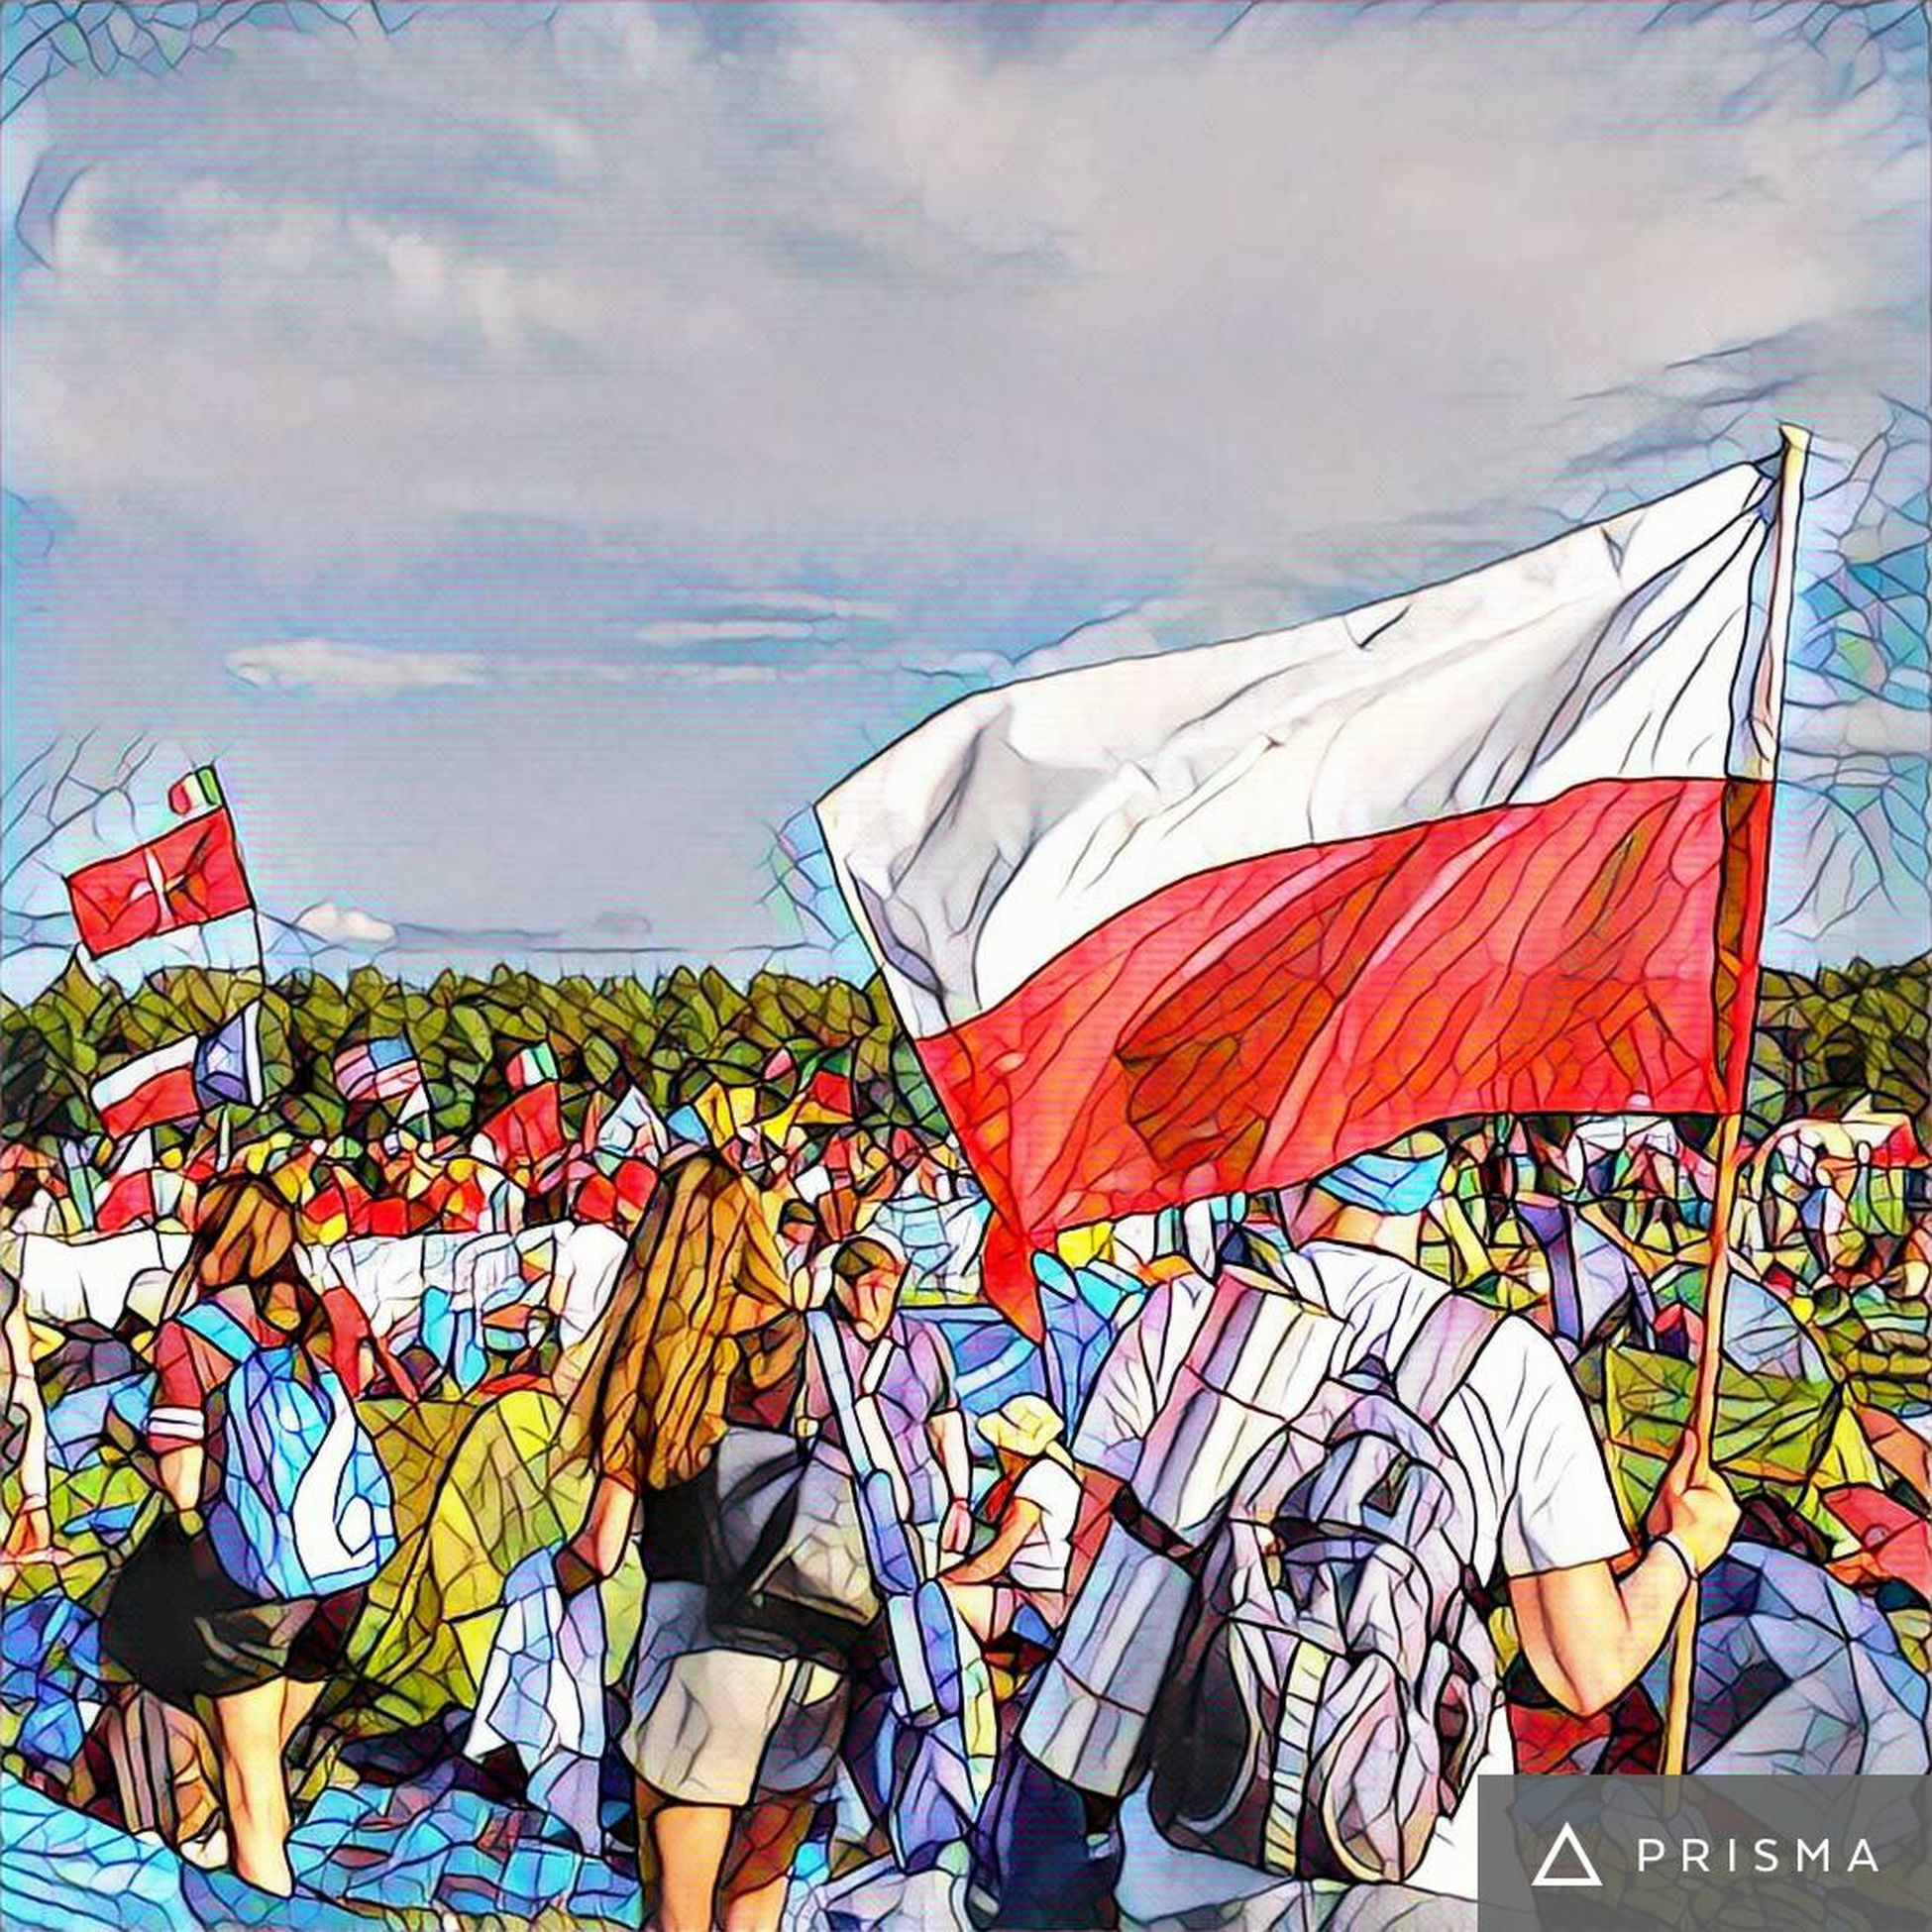 Guess, who is back 😏 Photo from Worldyouthday WYD2016 Poland Kraków, Poland Poland Prisma Misericordia Flag Patriotism Multi Colored People Day Event Unity Cometogheter